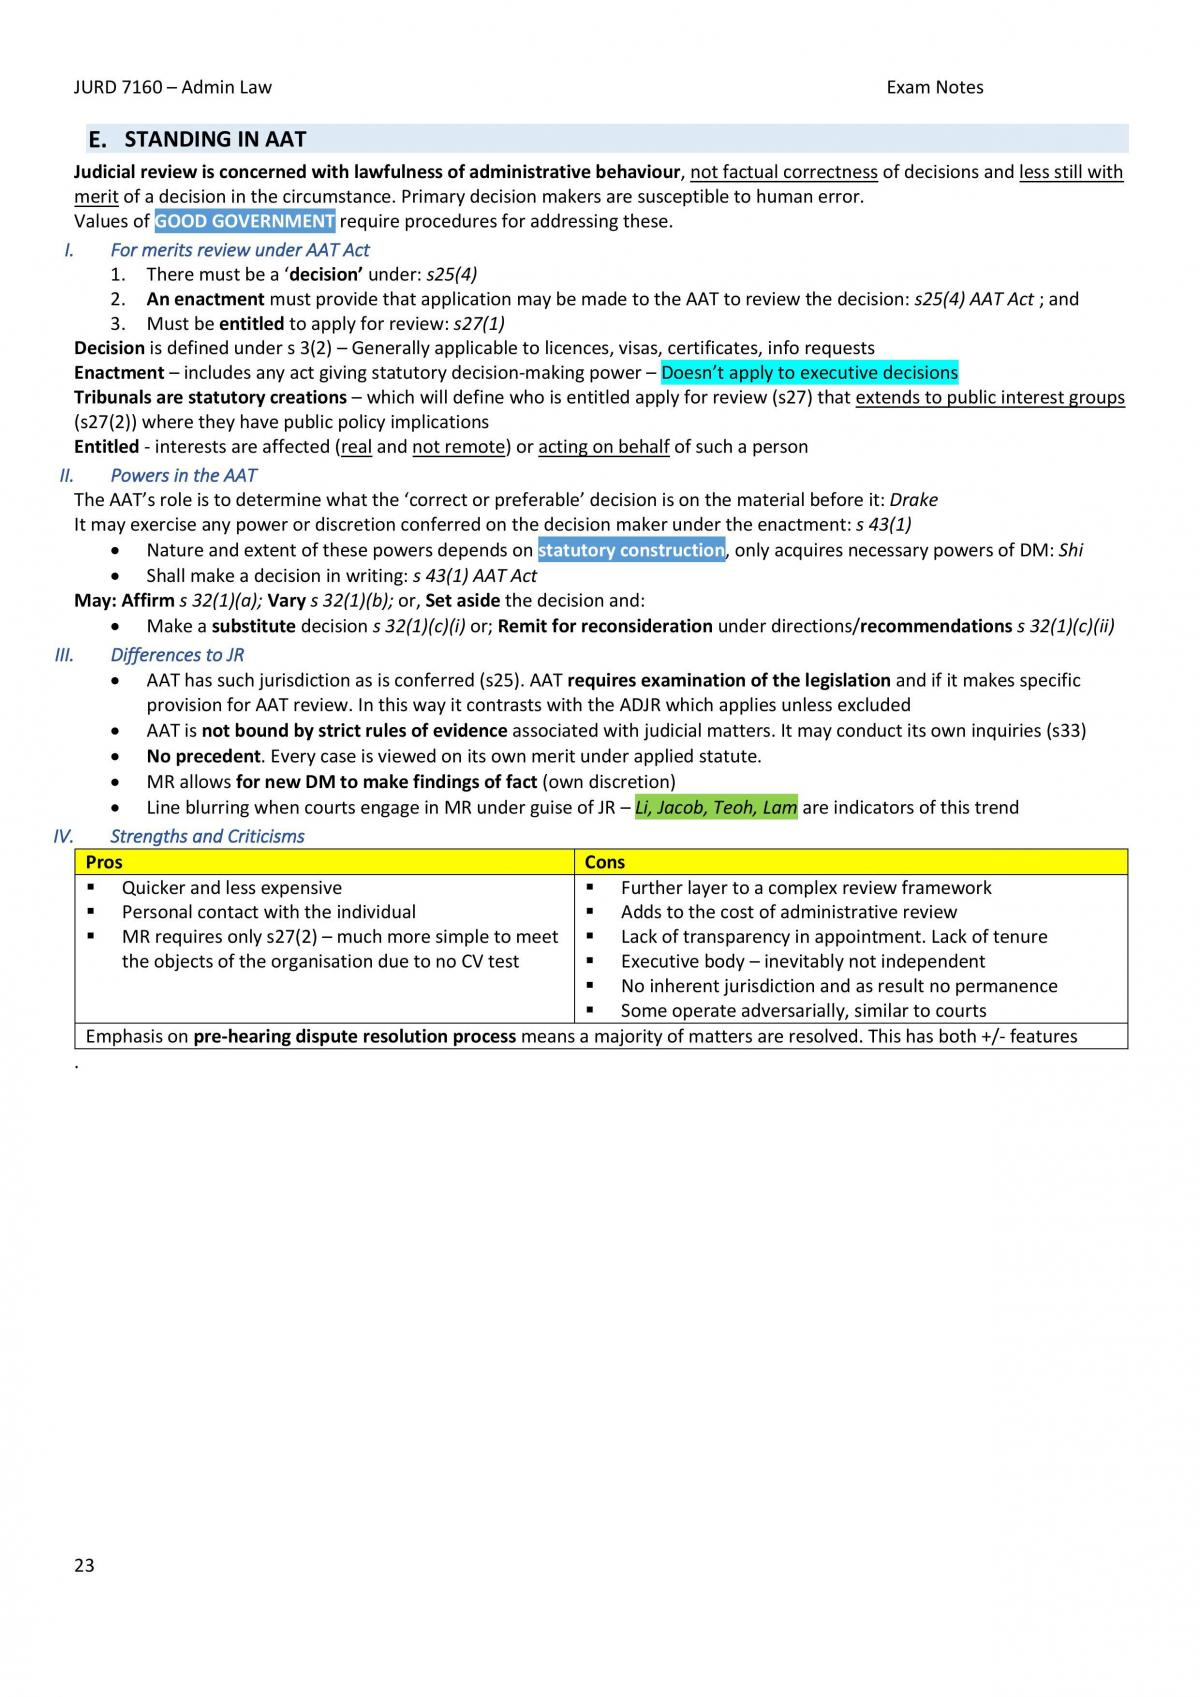 Full, Condensed Administrative Law Exam Notes - JURD7160 (S2, 2018) - Page 23